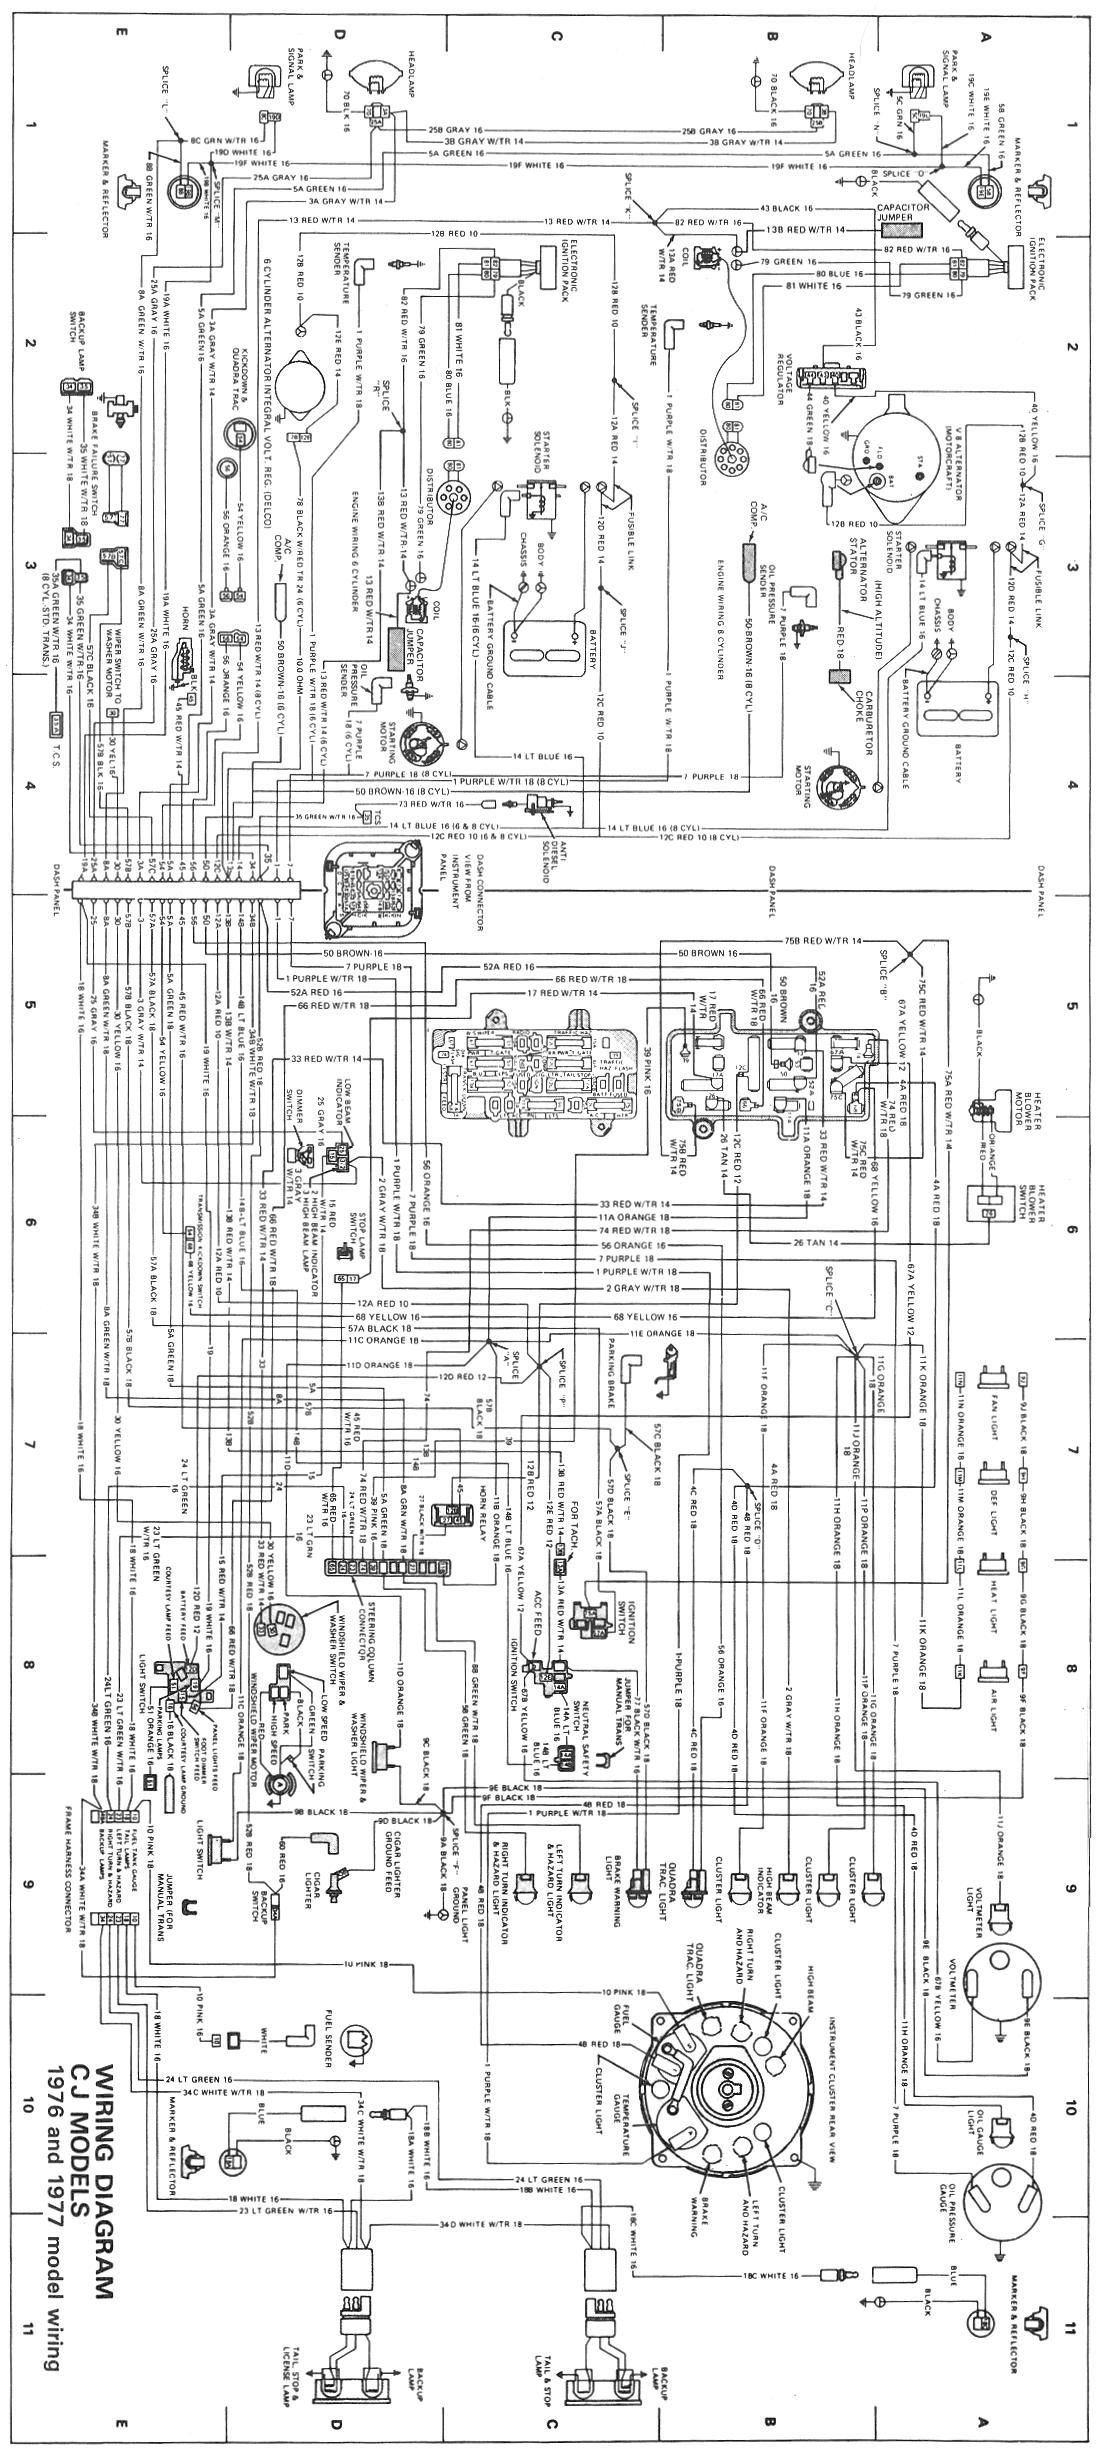 8d25ded6e3673519e155875e09844e5e cj wiring diagram 1976 1977 jpg 1,100�2,459 pixels 1976 jeep cj5 Painless Wiring Harness Diagram at aneh.co